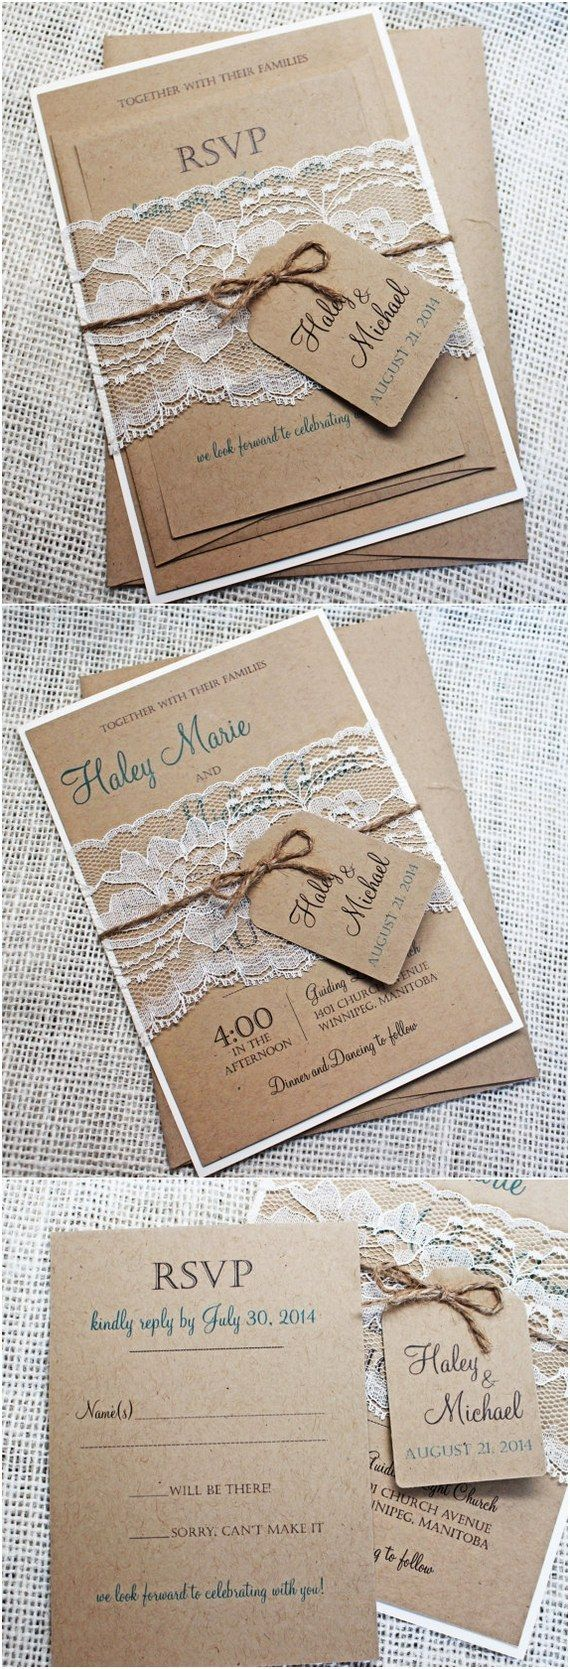 15 Rustic Wedding Invitations from Etsy | Pinterest | Lace weddings ...